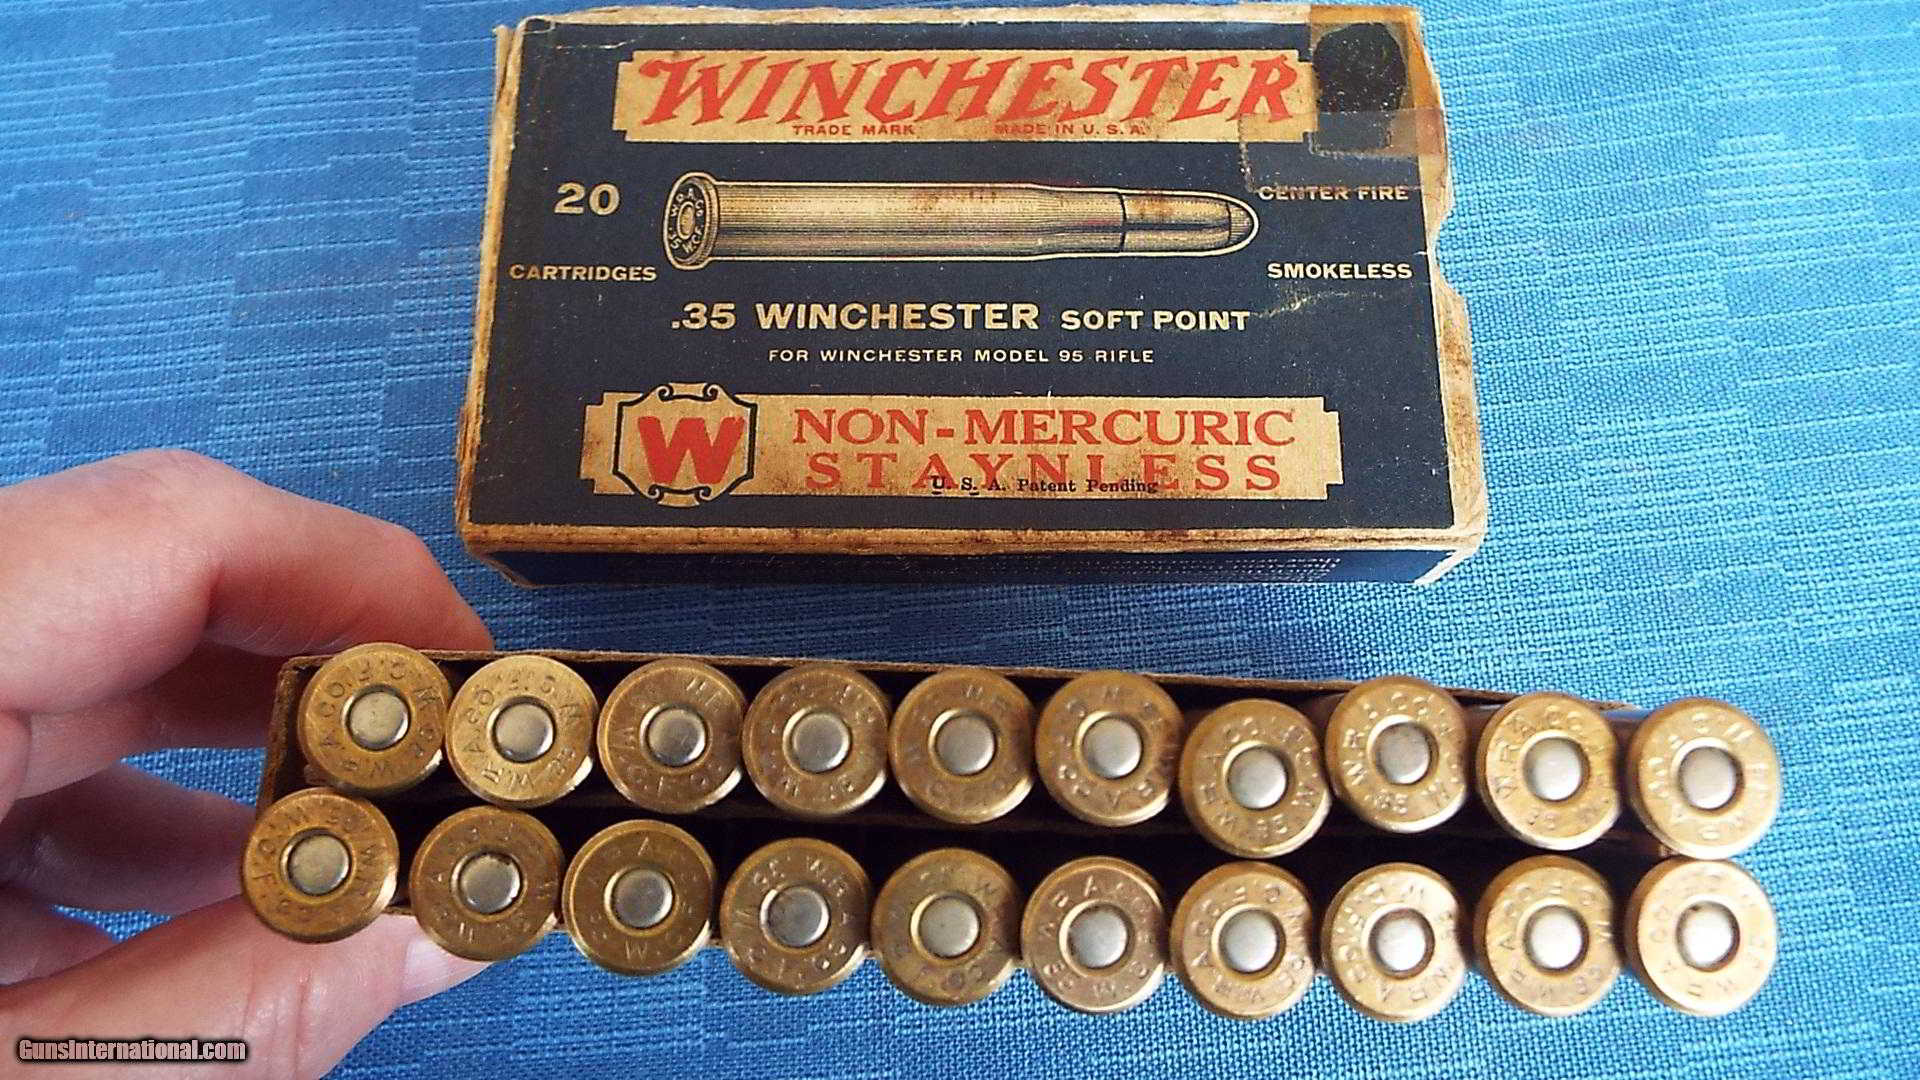 VINTAGE 1932 WINCHESTER BOX OF .35 WINCHESTER SOFT POINT ...